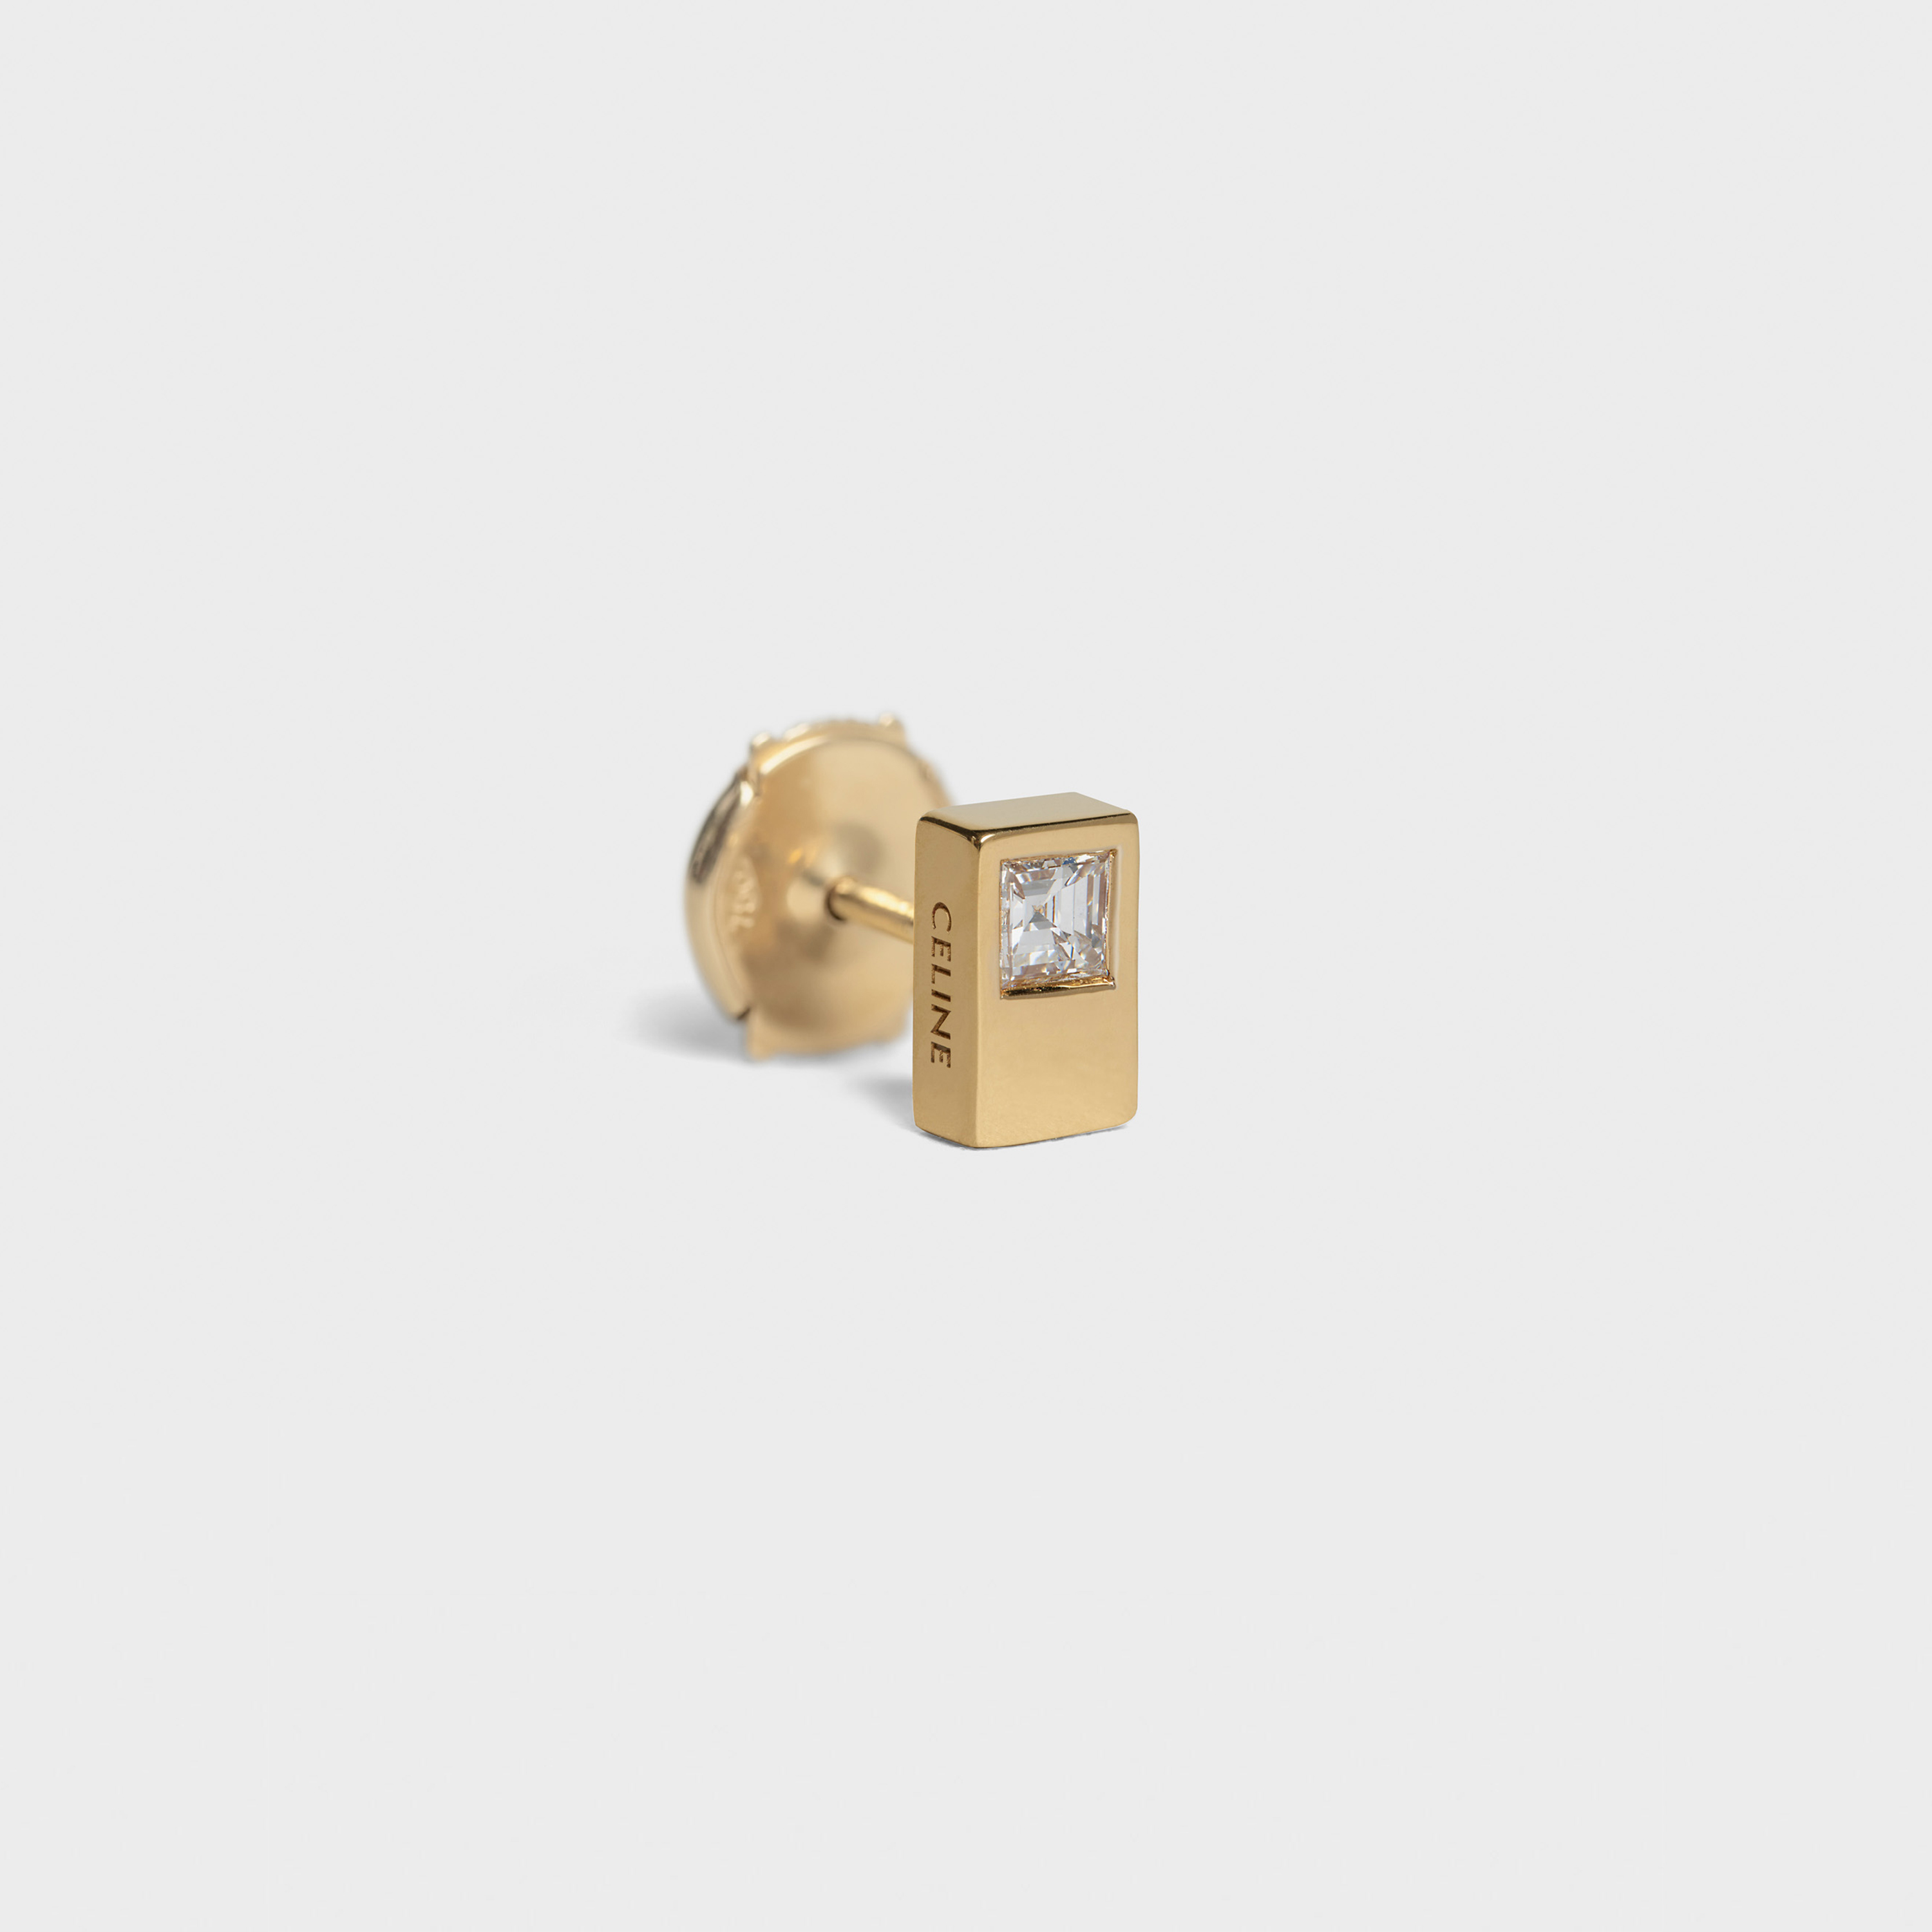 Celine Sentimental Double Square Stud in Yellow Gold and Diamond | CELINE